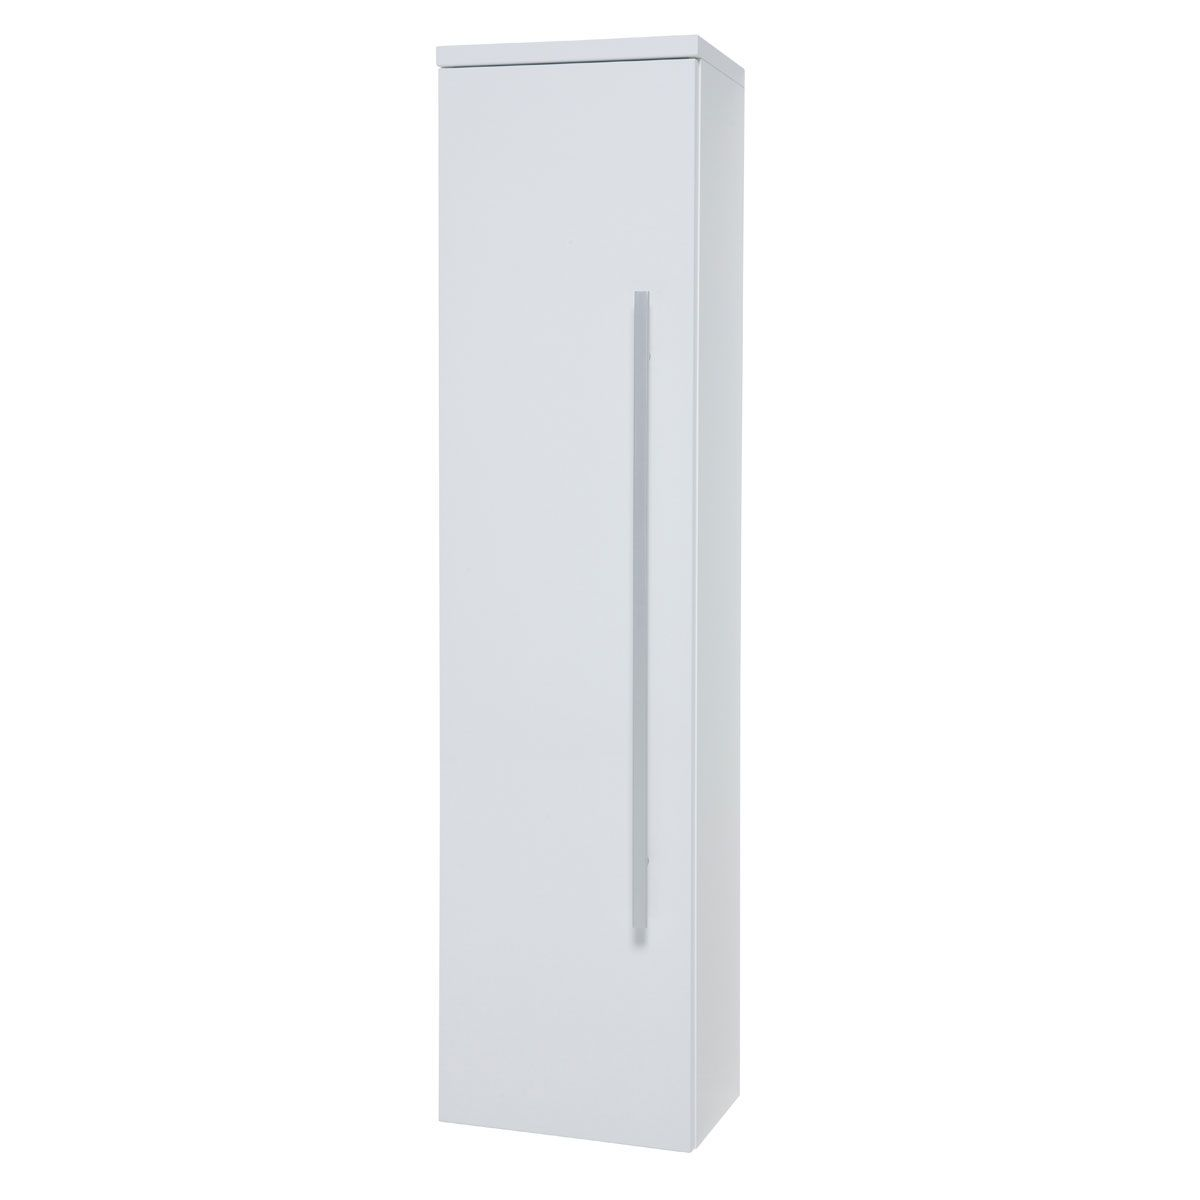 Kartell Purity White Wall Mounted Tall Unit